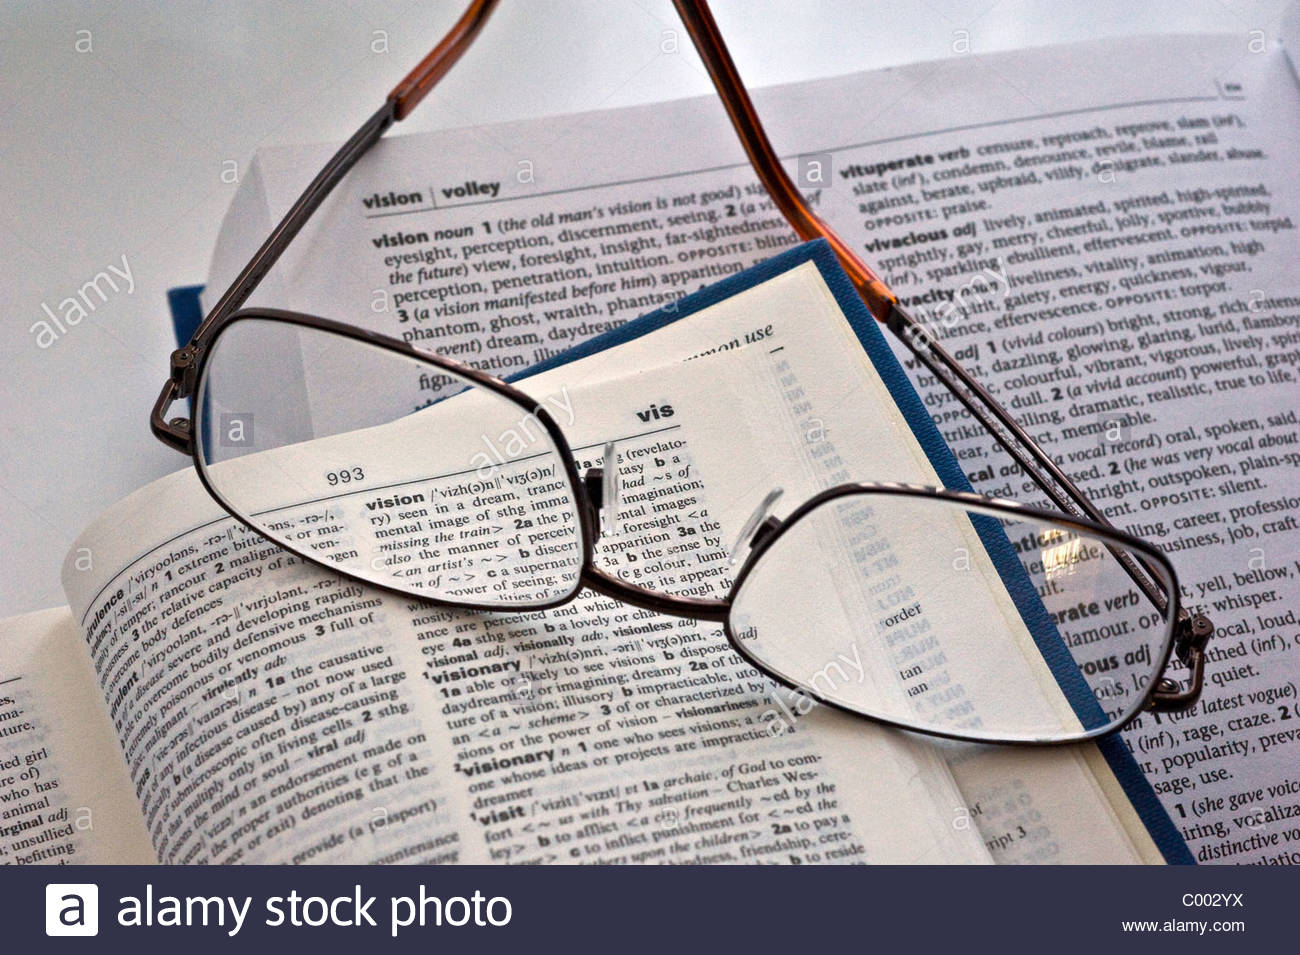 Squint Read Stock Photos & Squint Read Stock Images - Alamy